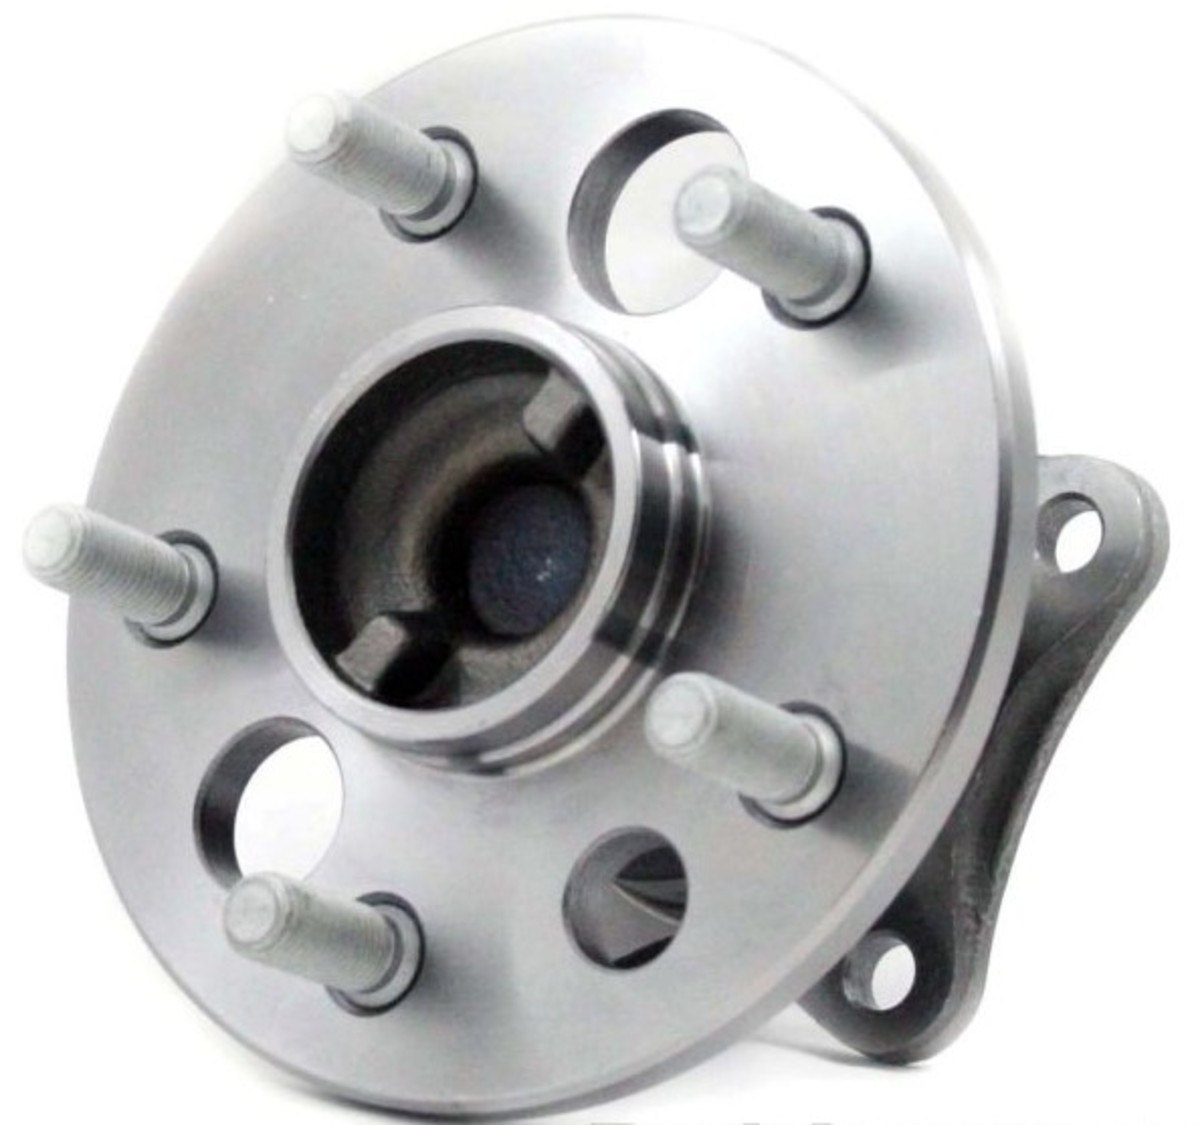 Toyota or Lexus Rear Hub and Bearing Assembly (front view)